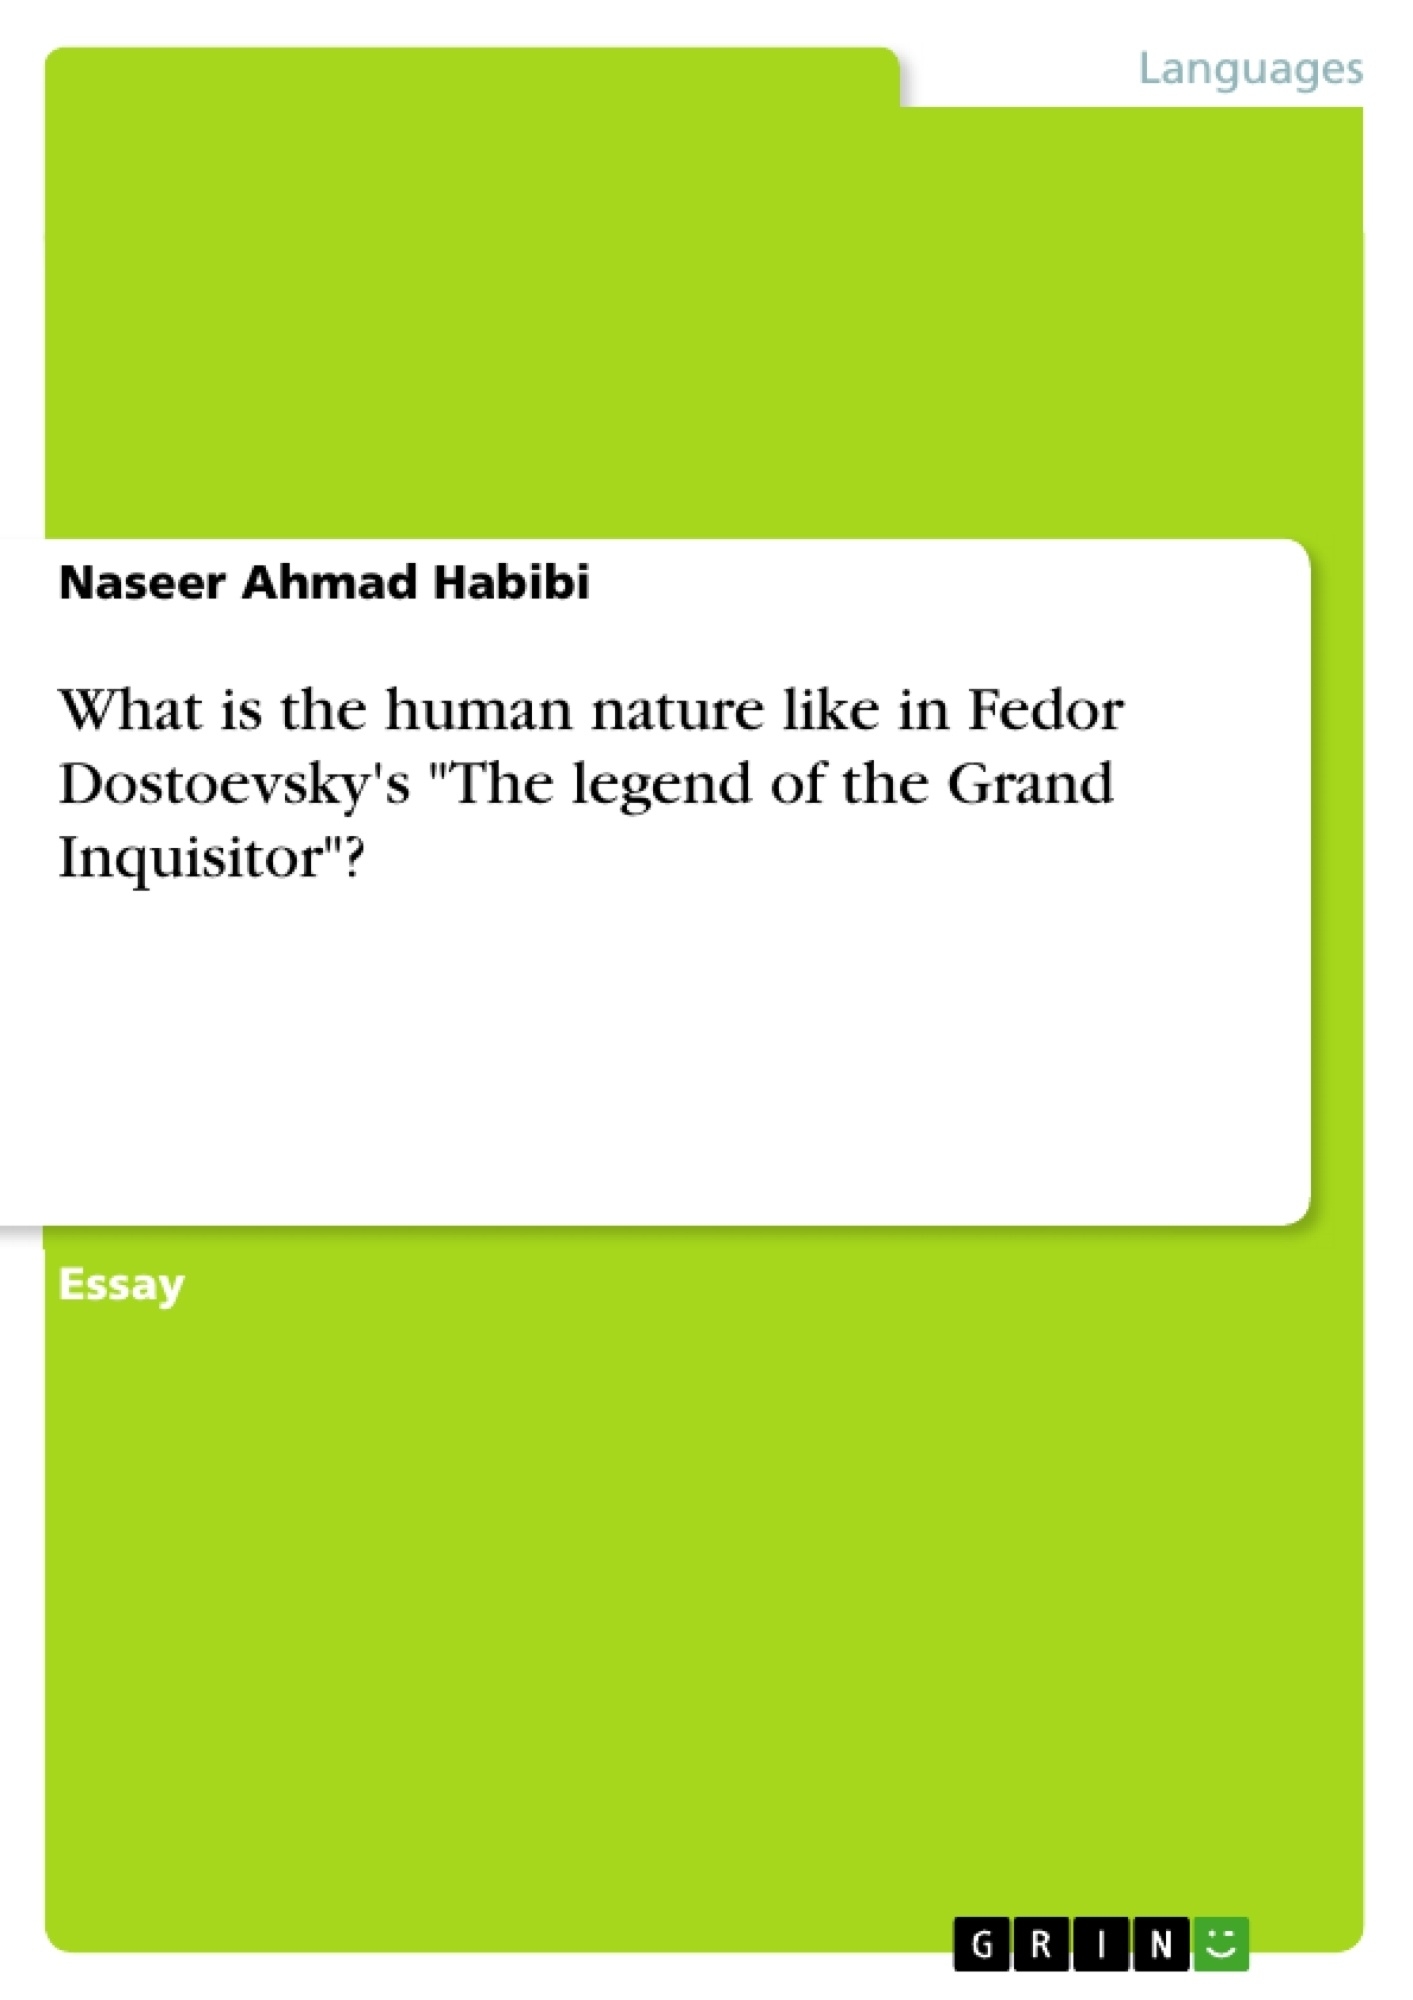 essays on human nature thomas aquinas on human nature the ocean  what is the human nature like in fedor dostoevsky s the legend of what is the